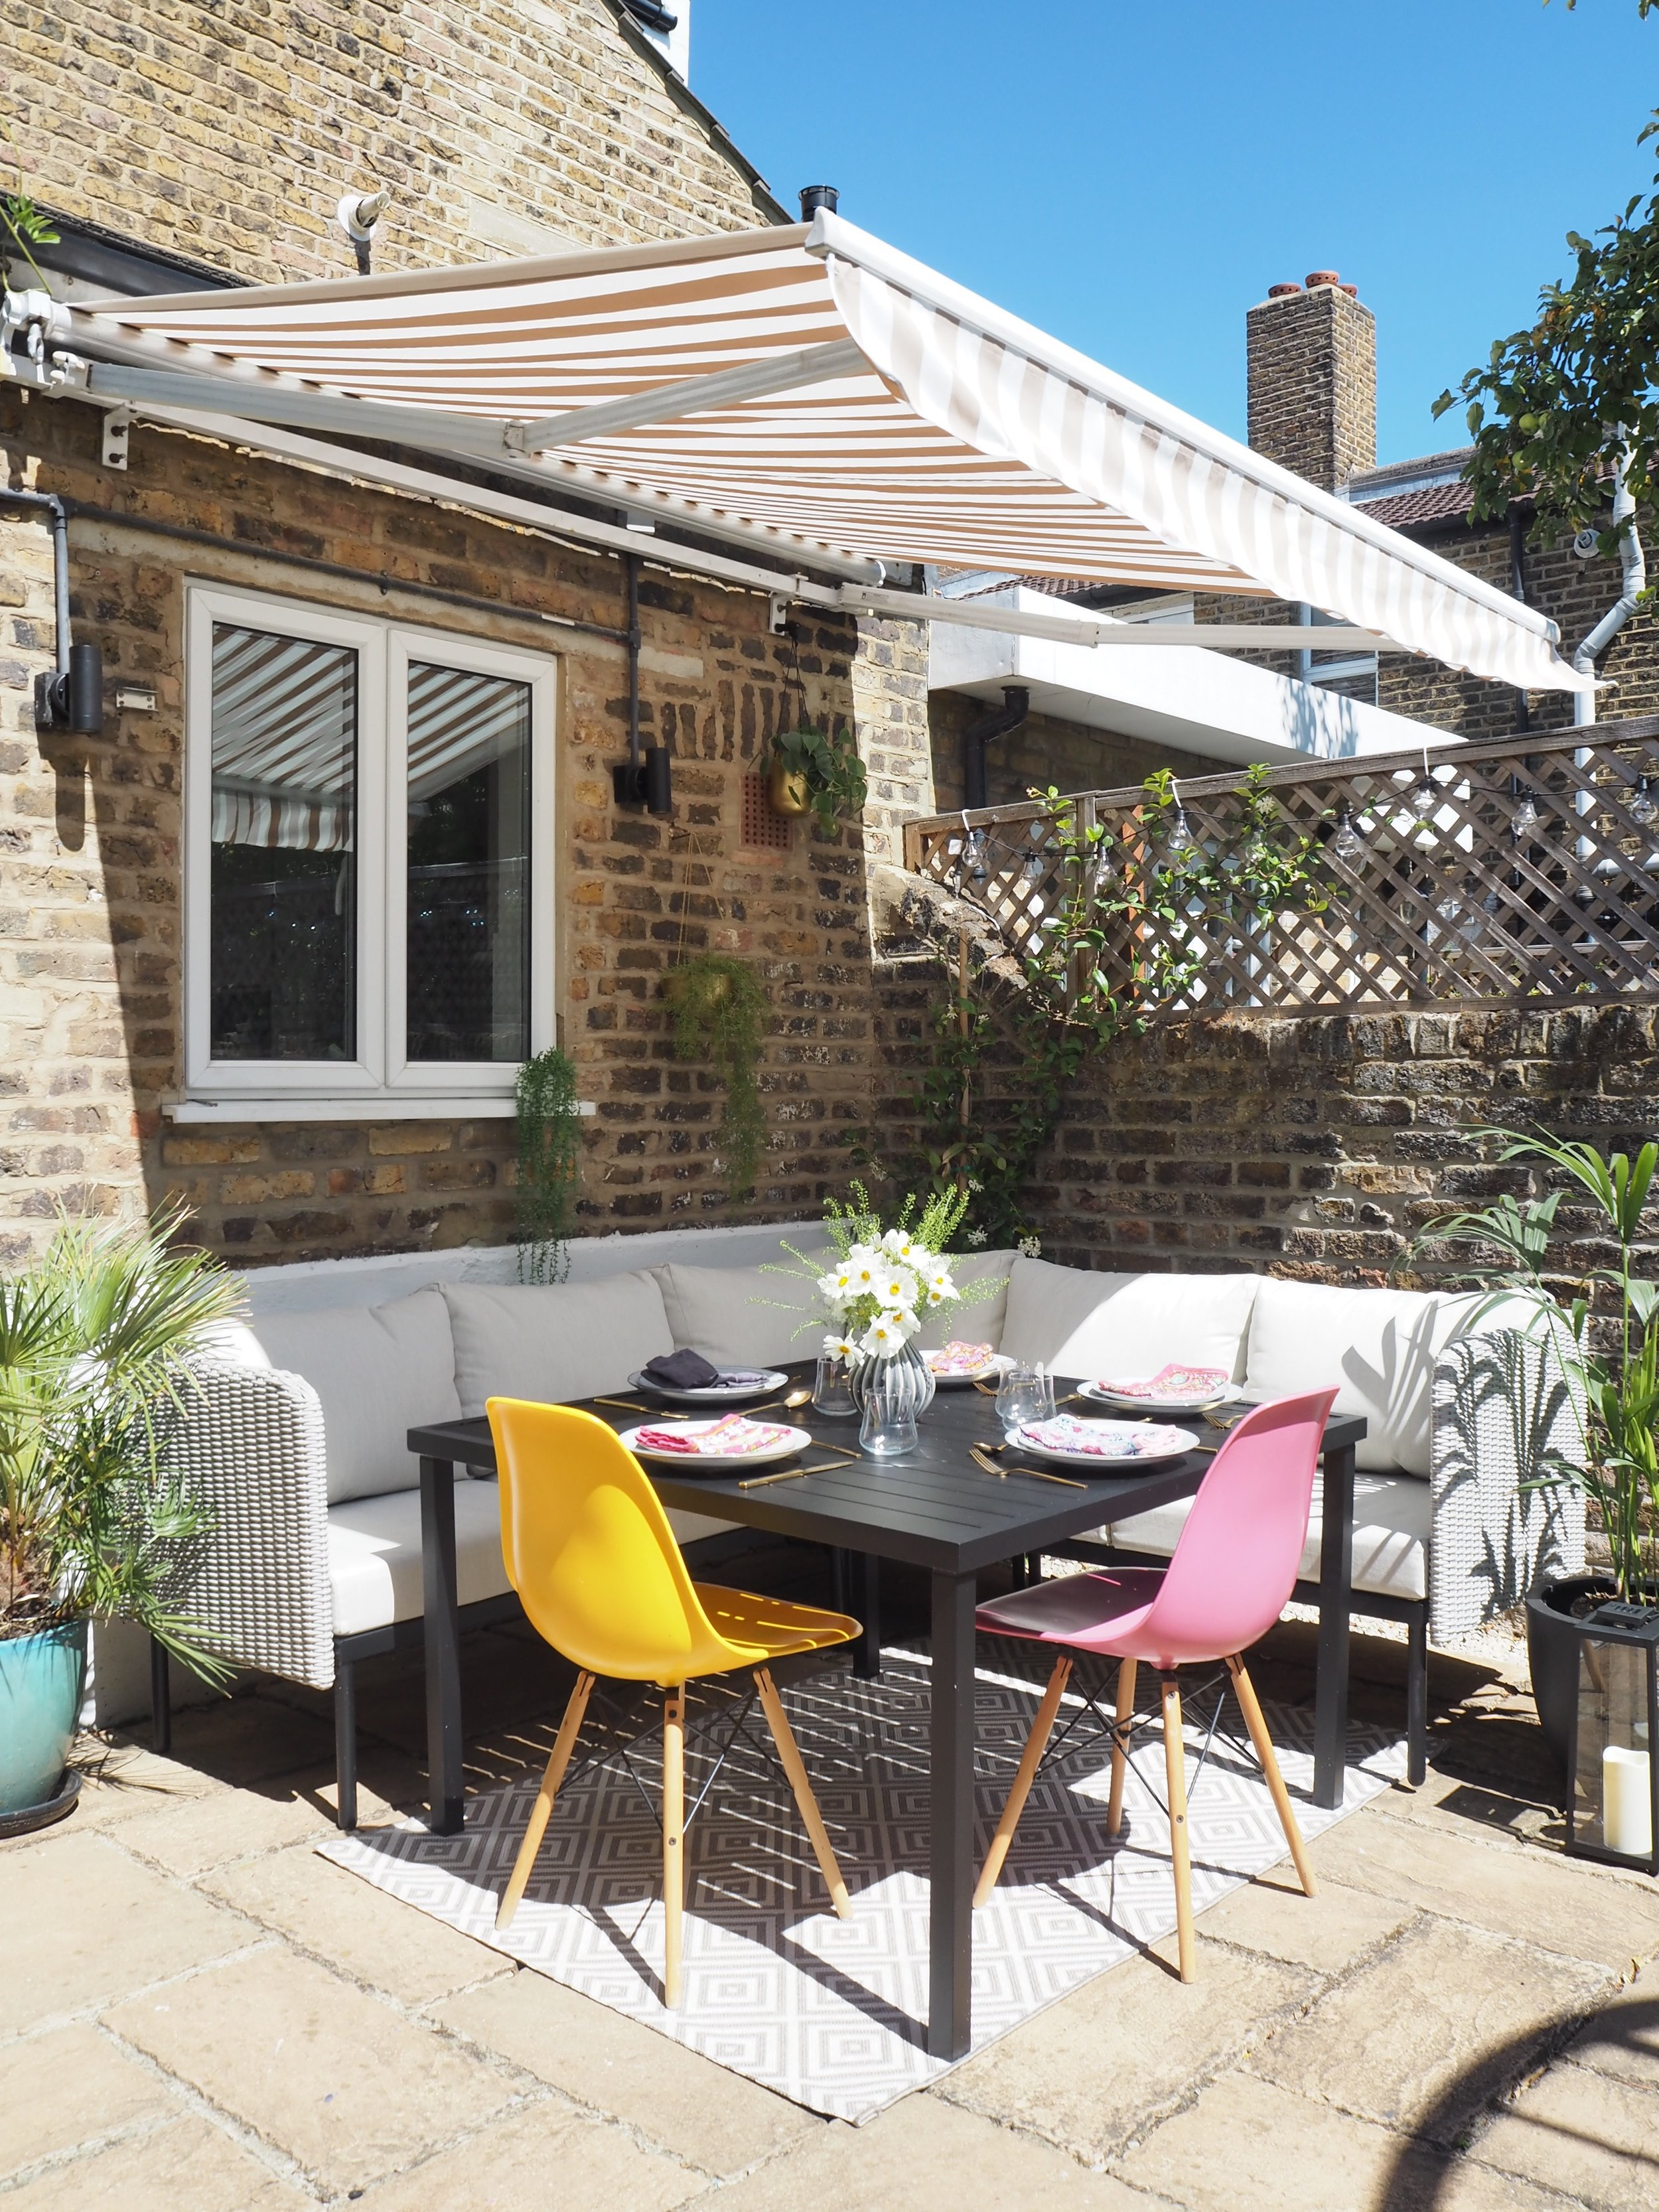 al fresco st tropez hanging chair and cushion wayfair heavy duty kitchen chairs how i transformed our scruffy patio into a gorgeous dining area